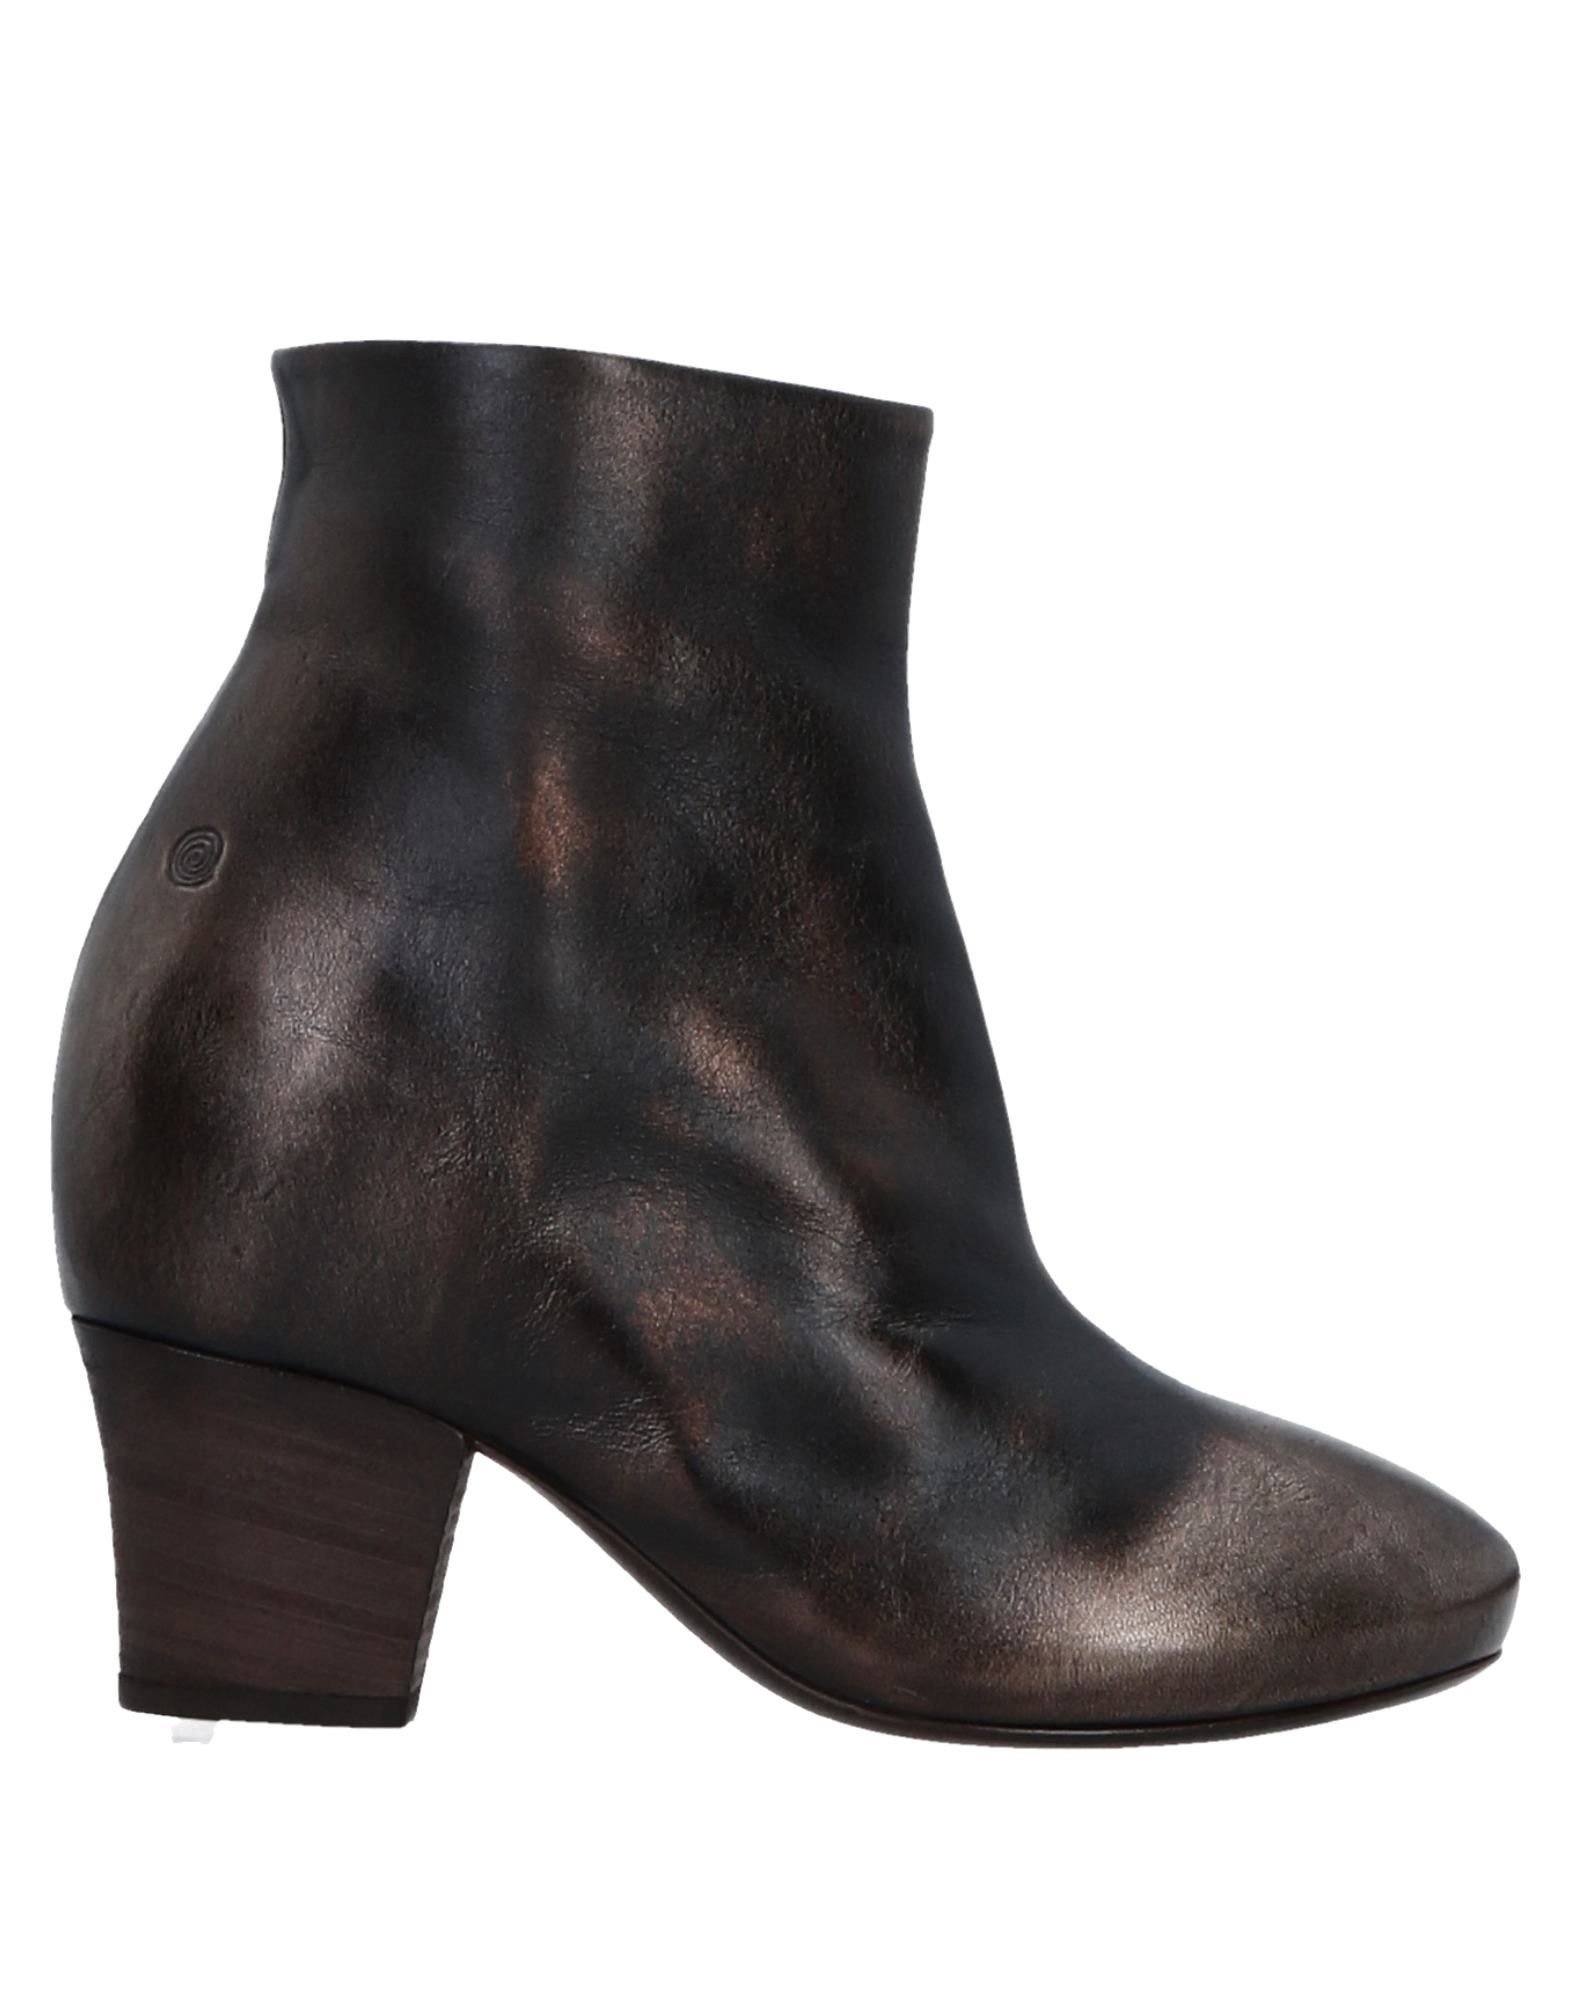 Marsèll Ankle Ankle Boot - Women Marsèll Ankle Ankle Boots online on  United Kingdom - 11516674DF 1fef4e